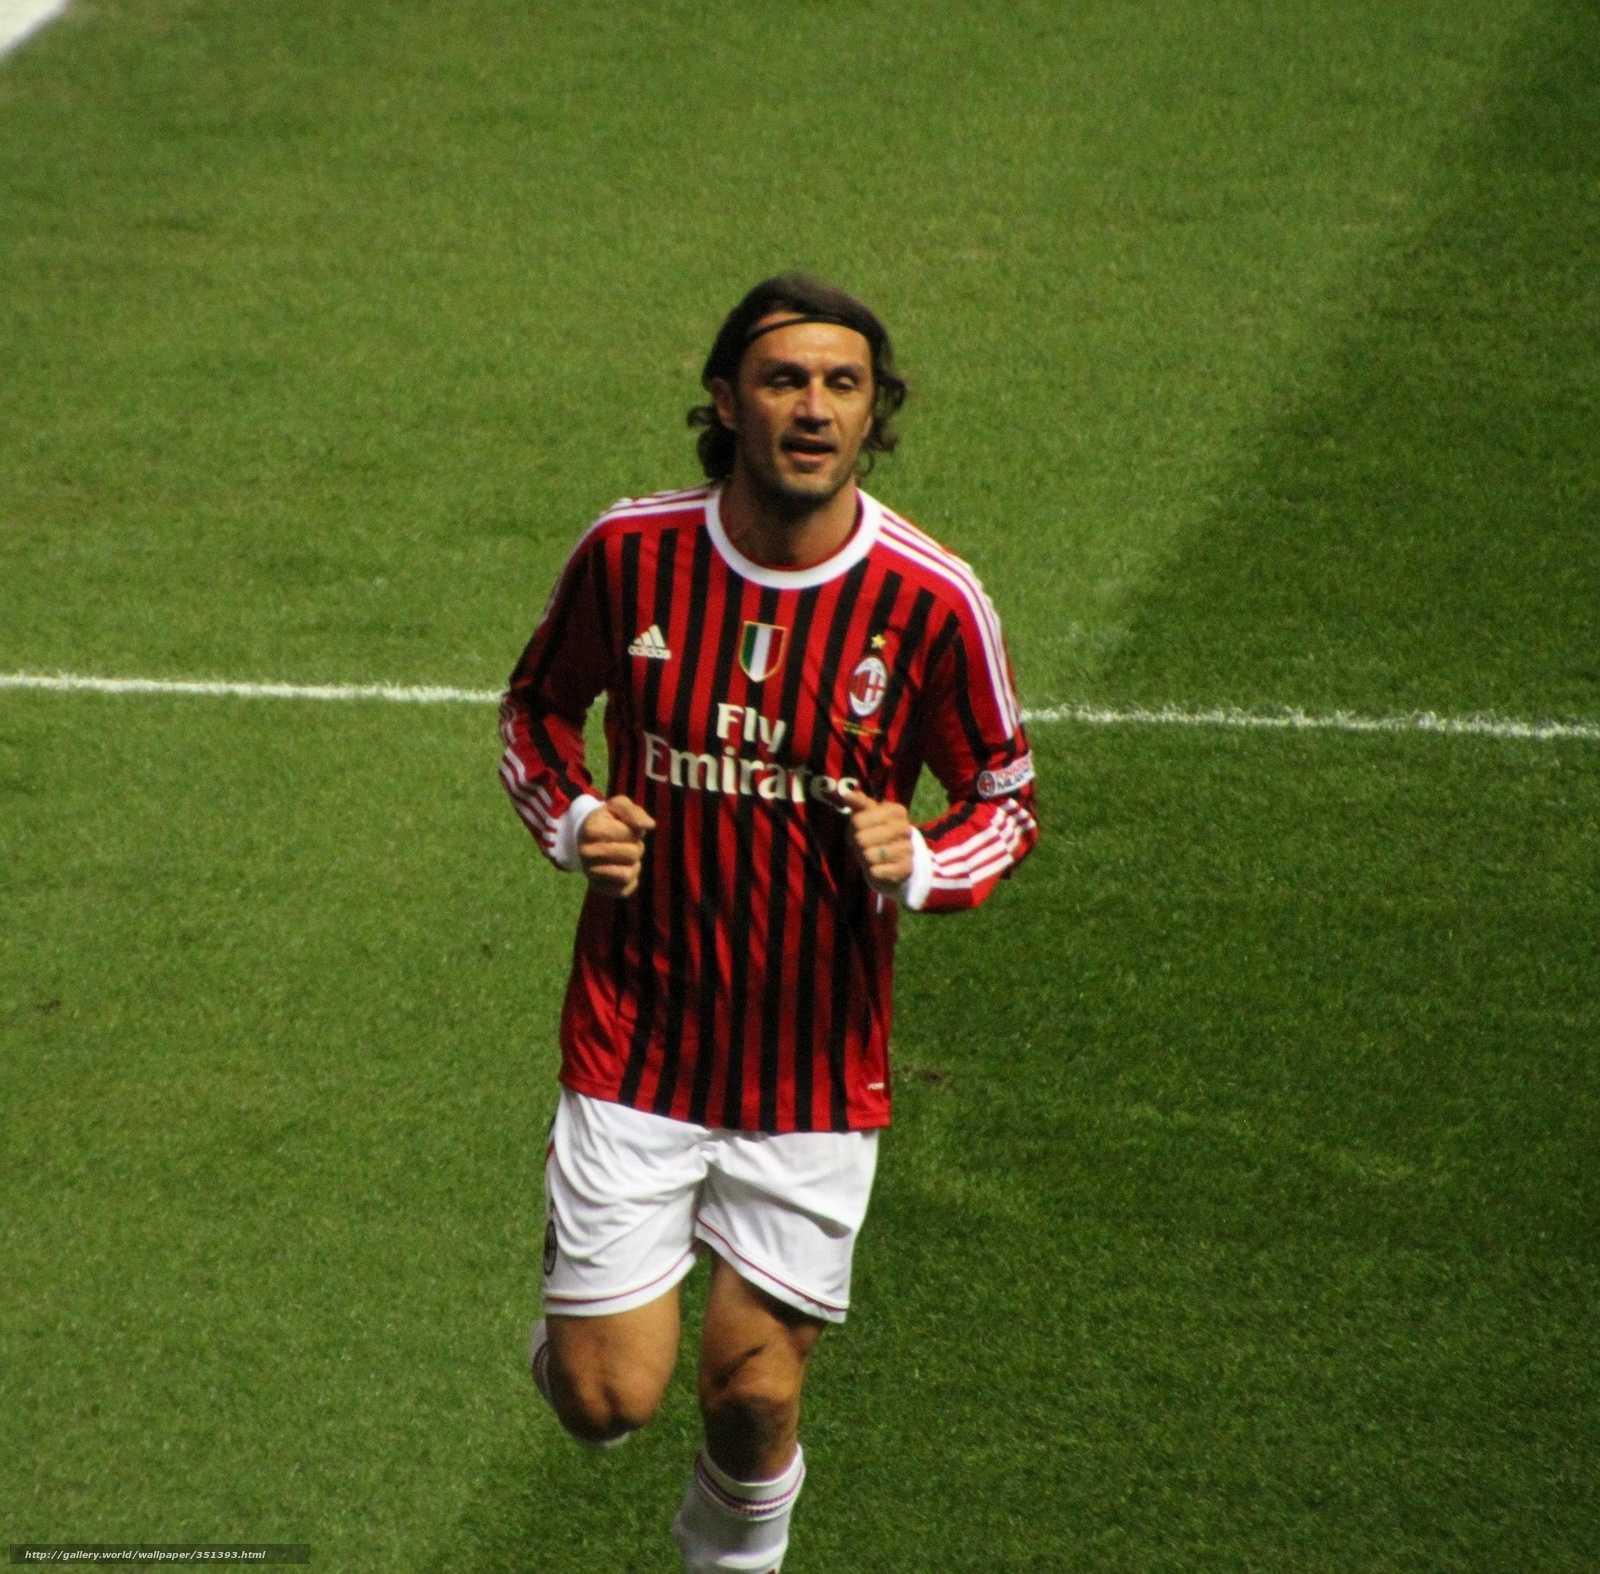 paolo maldini 2012 hd - photo #18